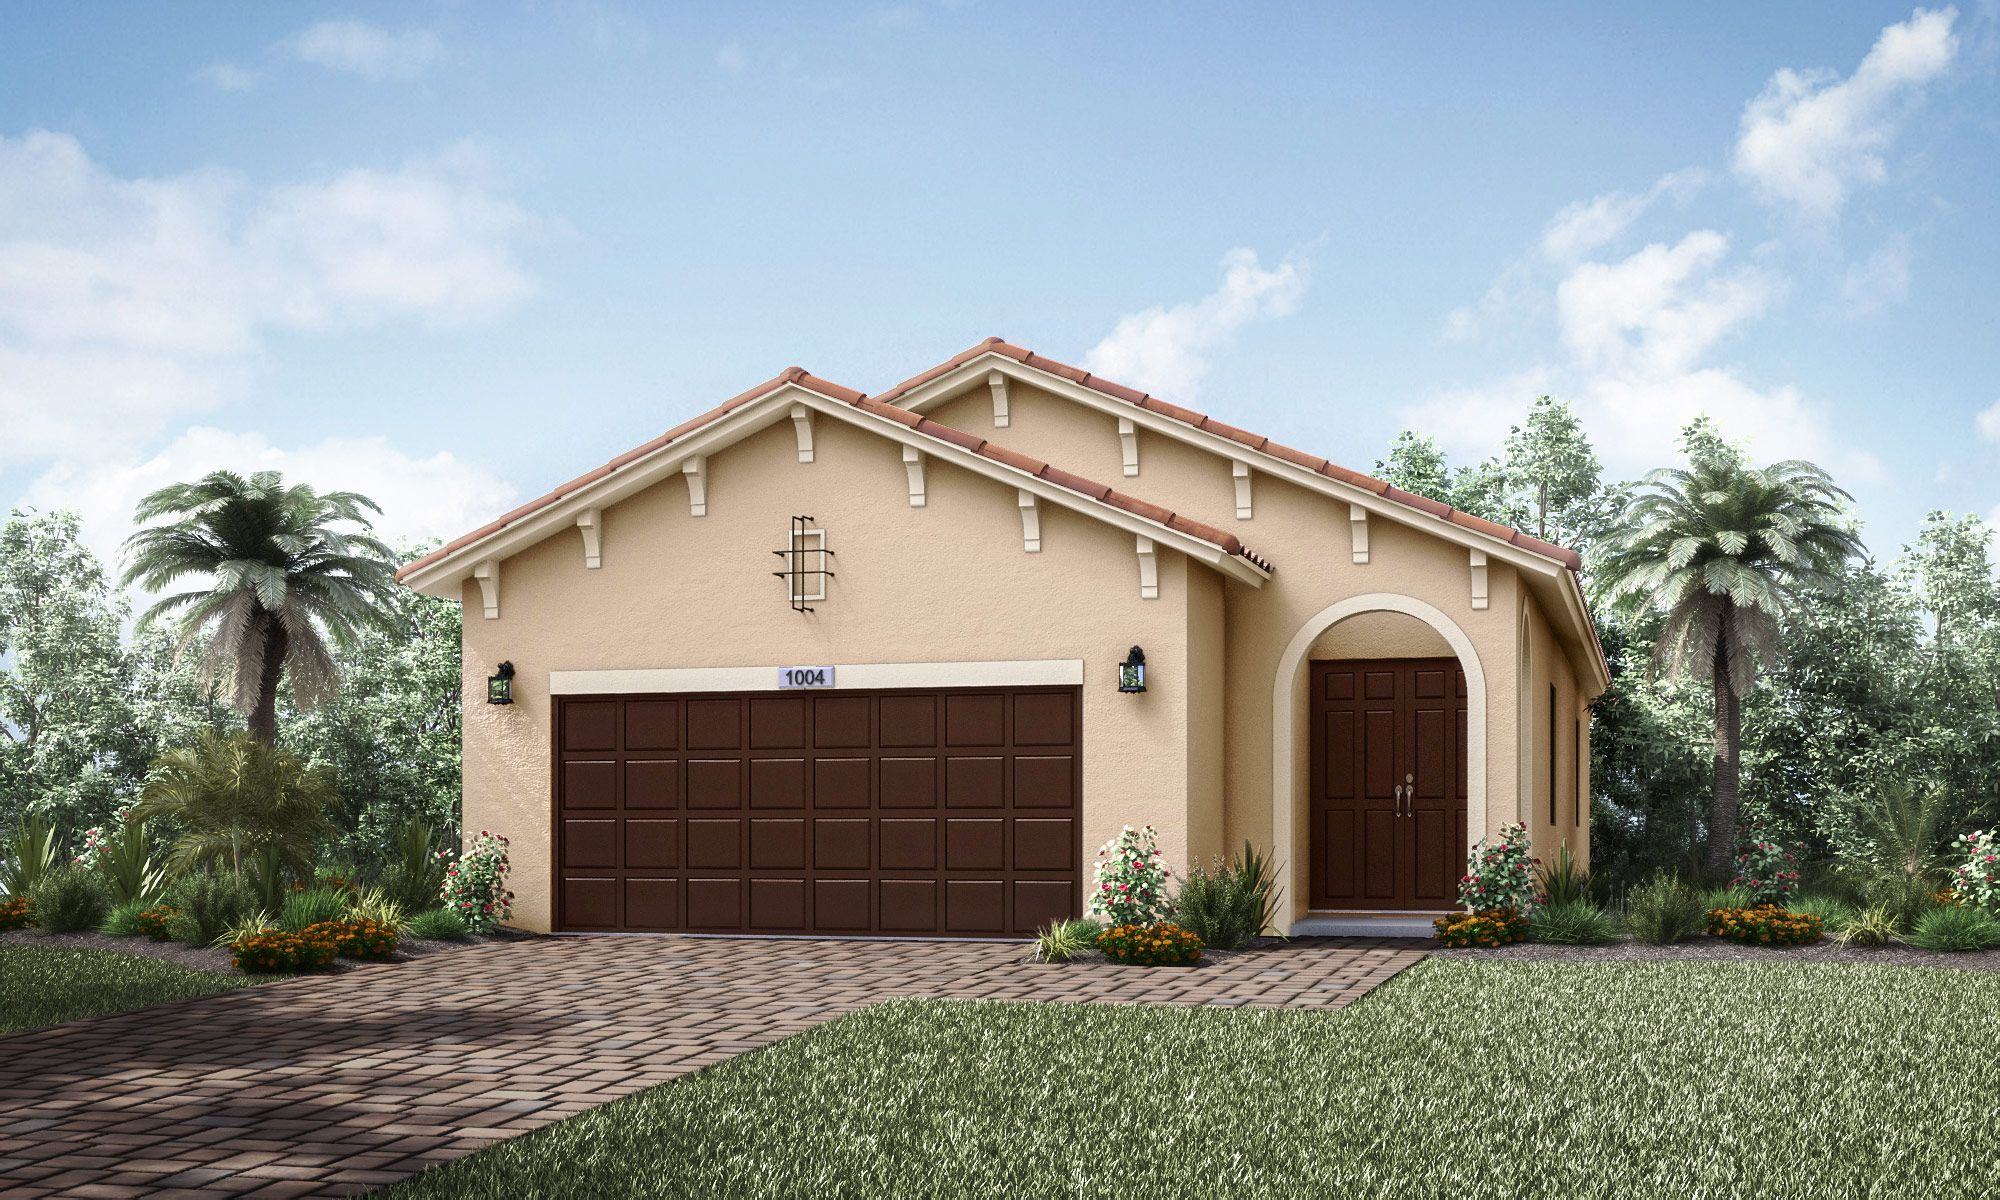 Baxter One Story House In Tamarac Manor Parc 13th Floor Homes Manor Parc S Baxter Model Home In Tamarac Fl Has A 1 627 Sq Model Homes Home Home Builders